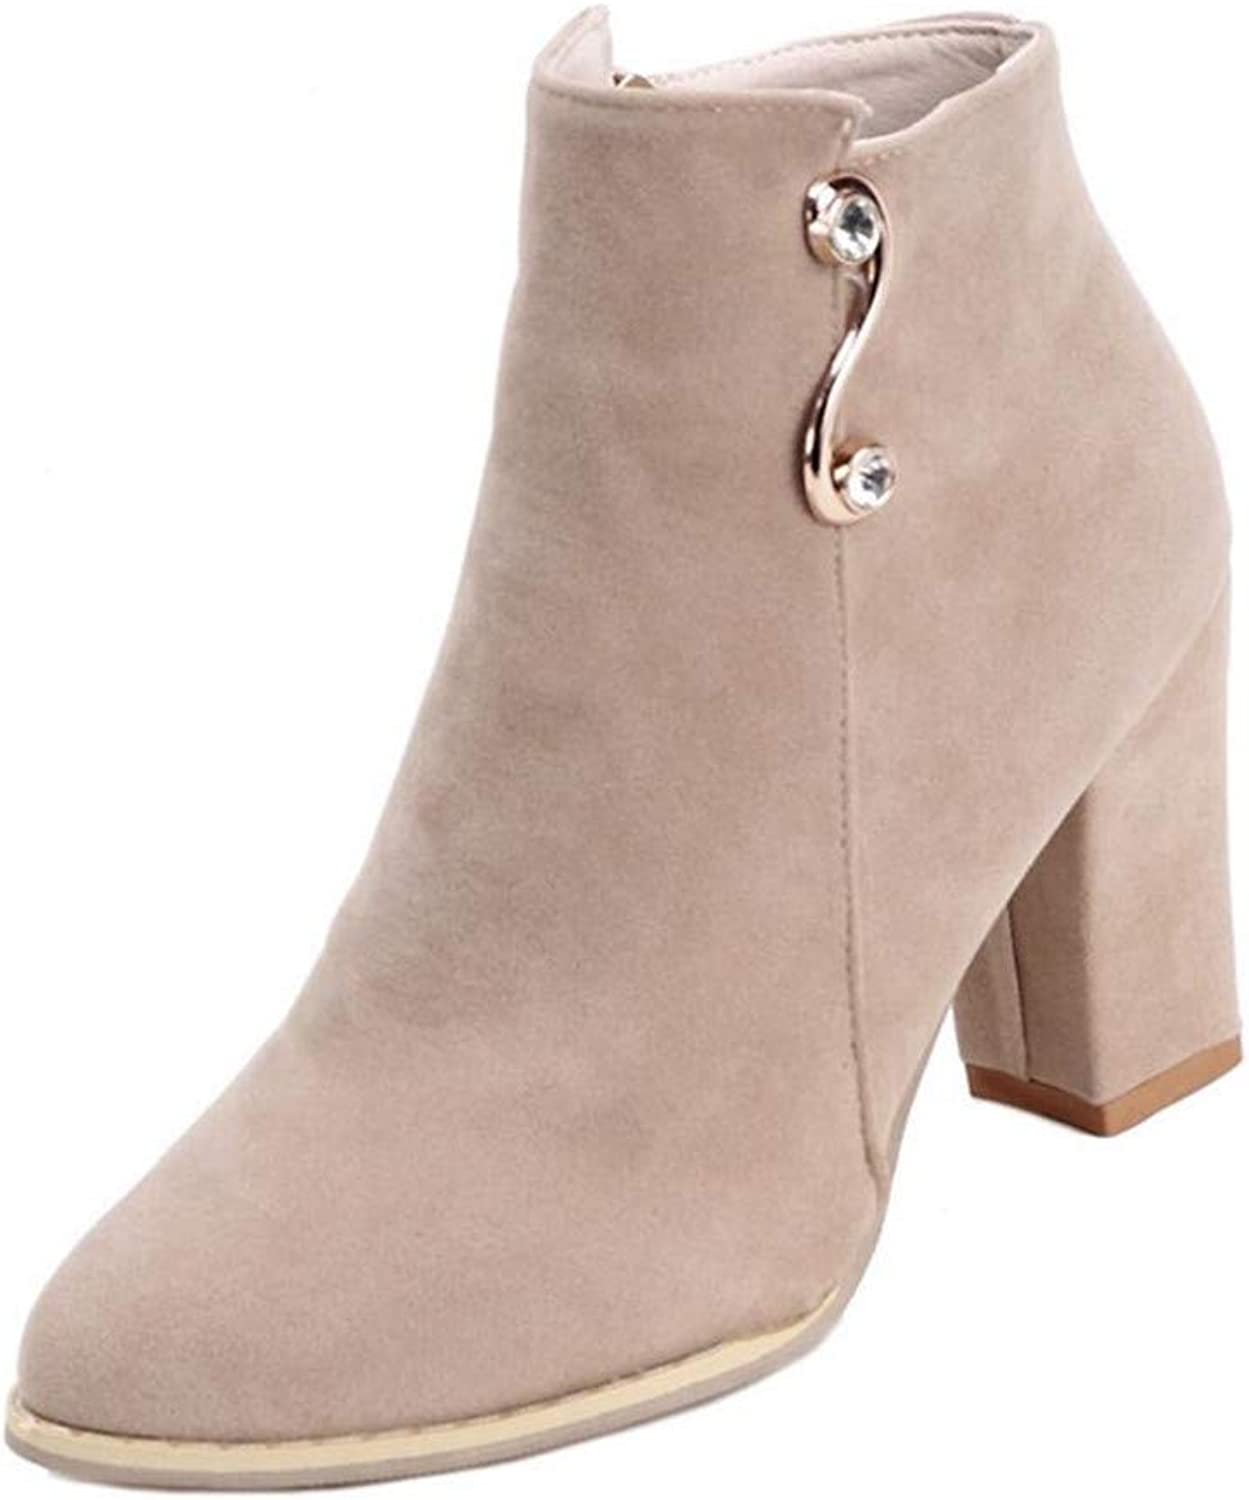 MODEOK High Heel Booties for Women